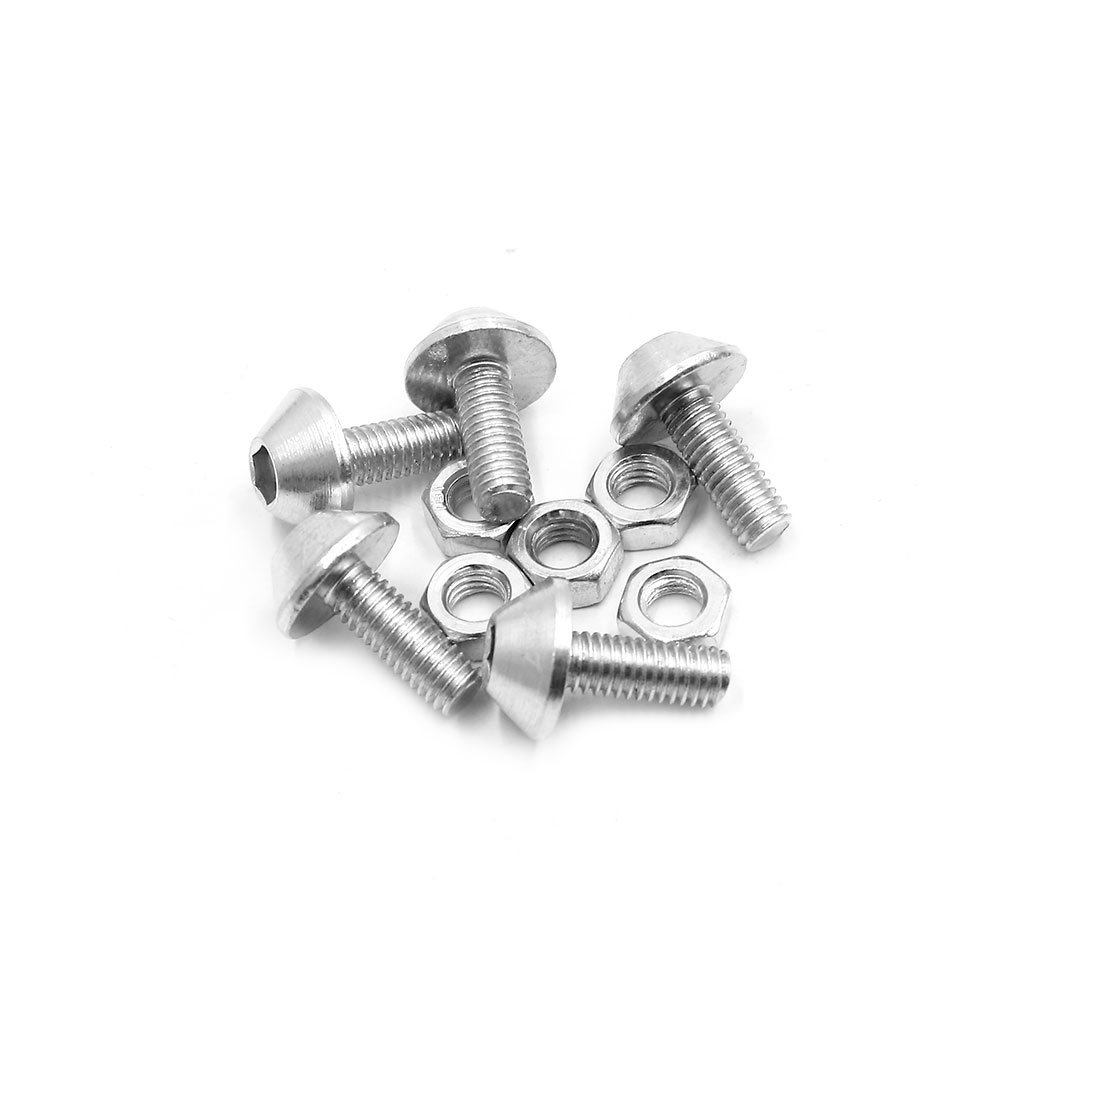 Uxcell a17061900ux1478 Motorcycle License Plate Bolt Screw 5 Pack